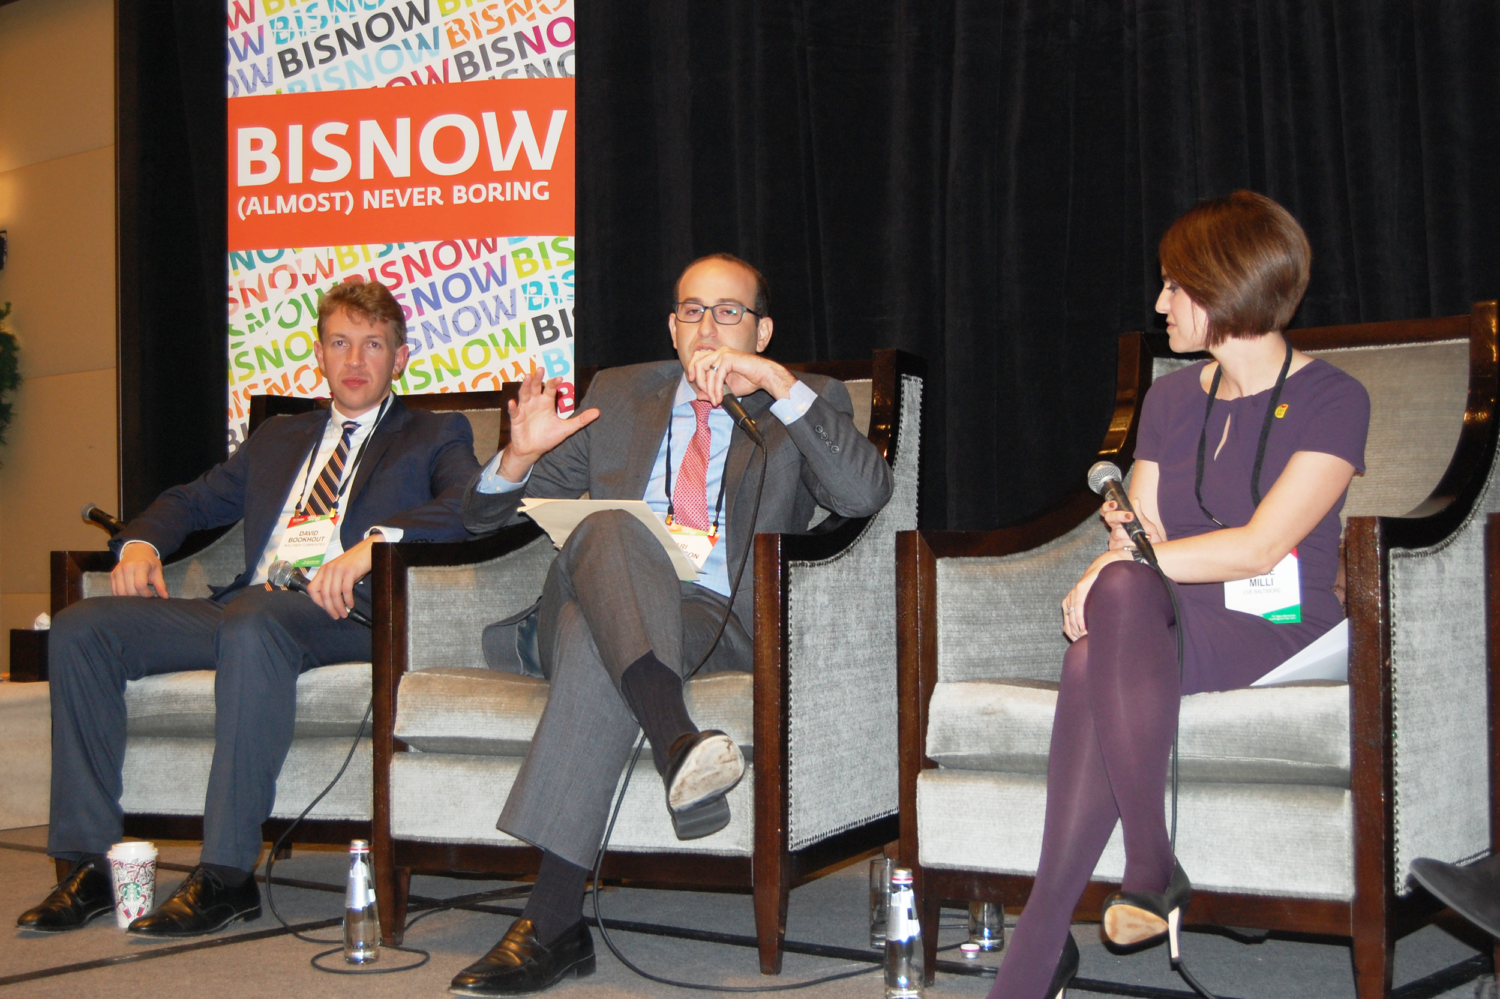 Ari Abramson VP Multifamily Acquisitions Speaks Bisnow Event